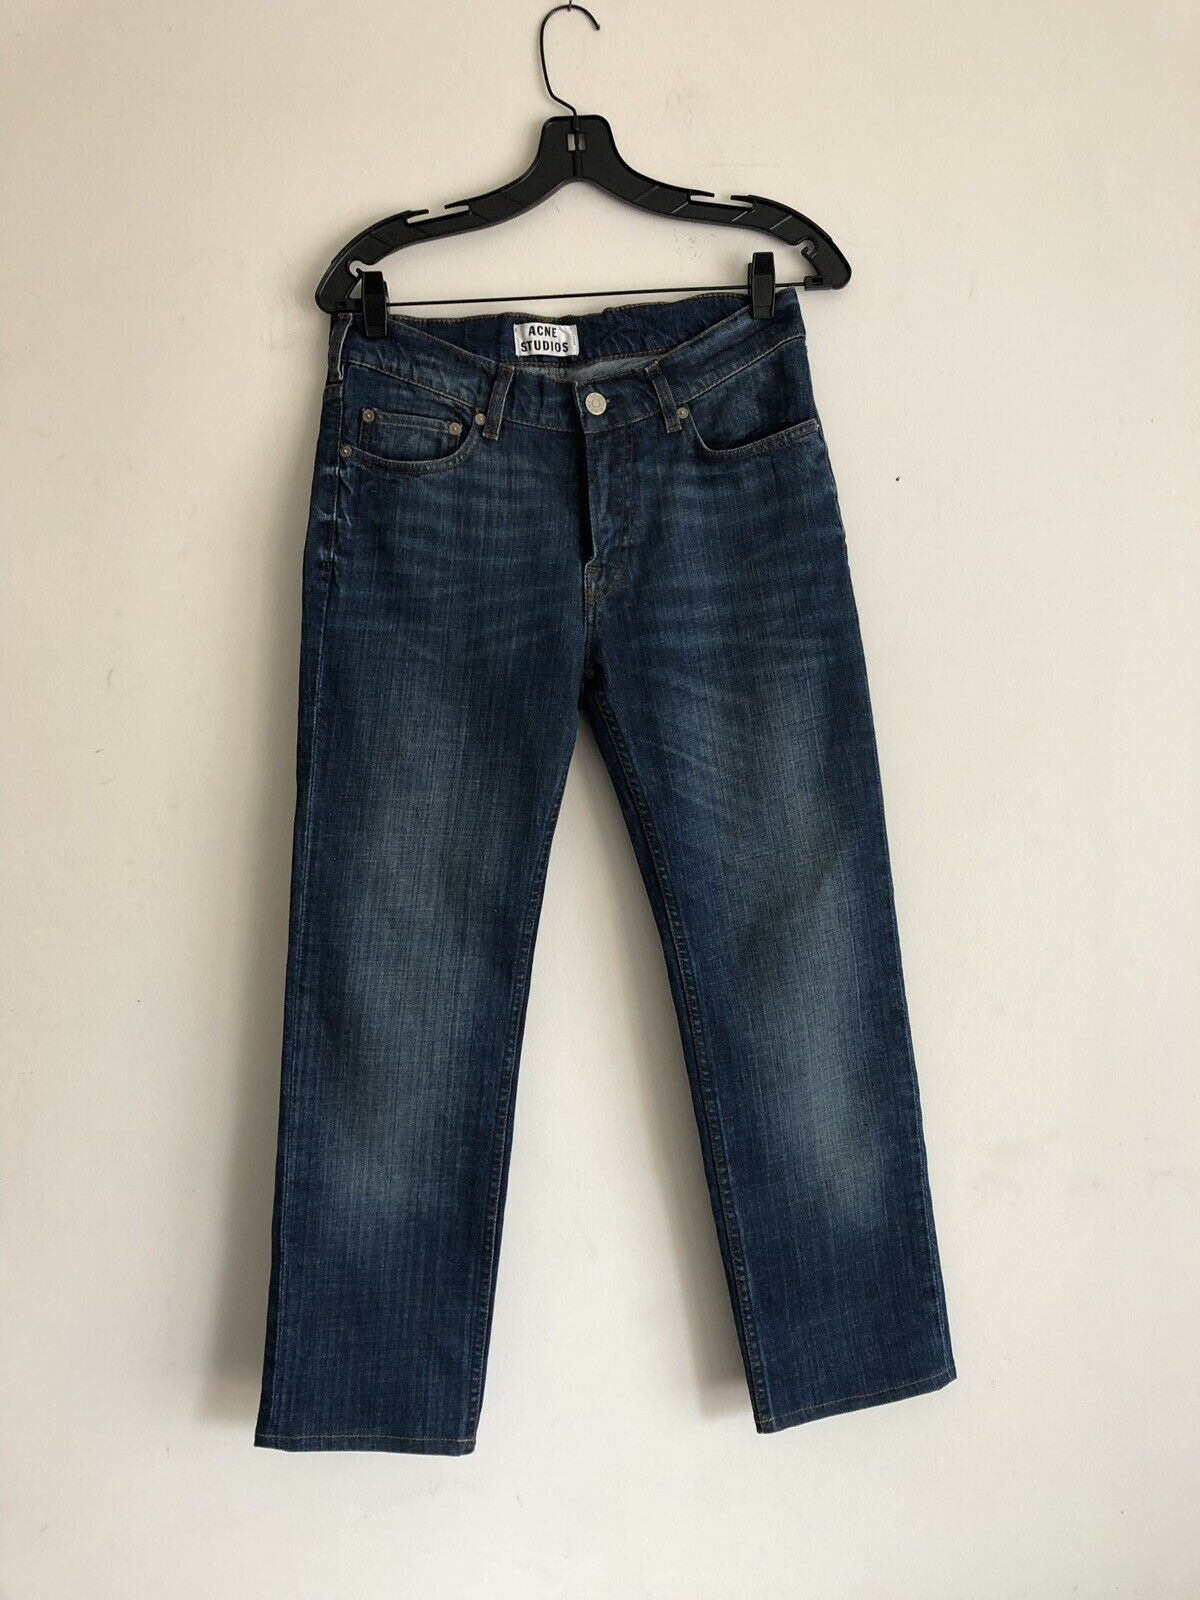 Acne Studio Ace Stretch Vintage Denim Jeans Size 29